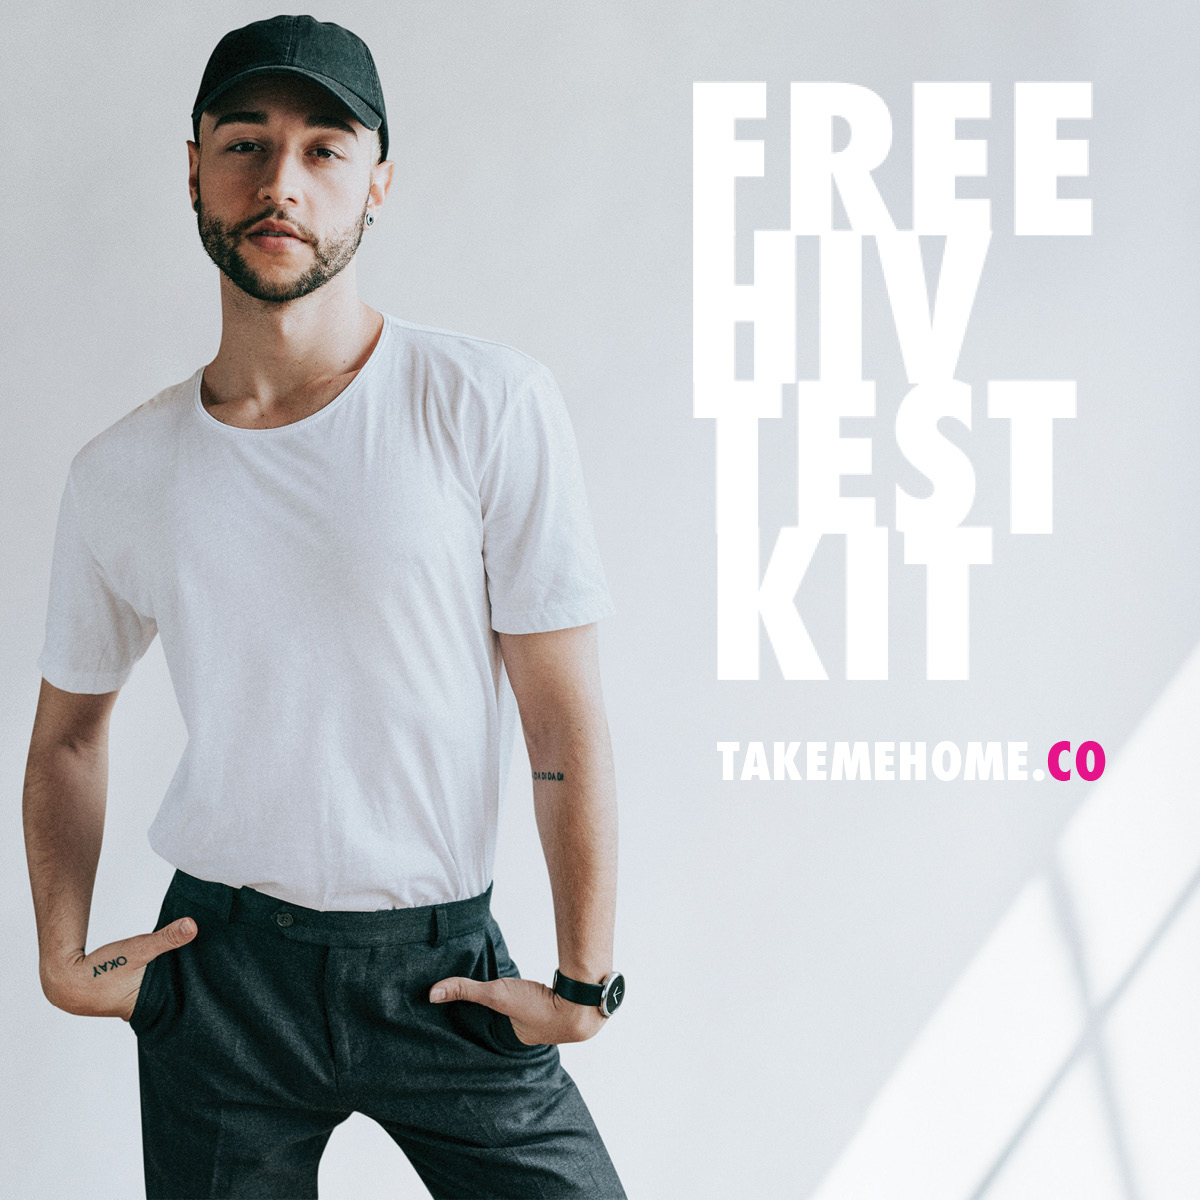 Want to get tested for HIV, but uncomfortable going to a clinic? Test yourself at home with TakeMeHome, a free program that delivers HIV self-tests directly to you. Sign up at  to get your free kit.  #freetesting #gettested #HIV #Iknowmystatus